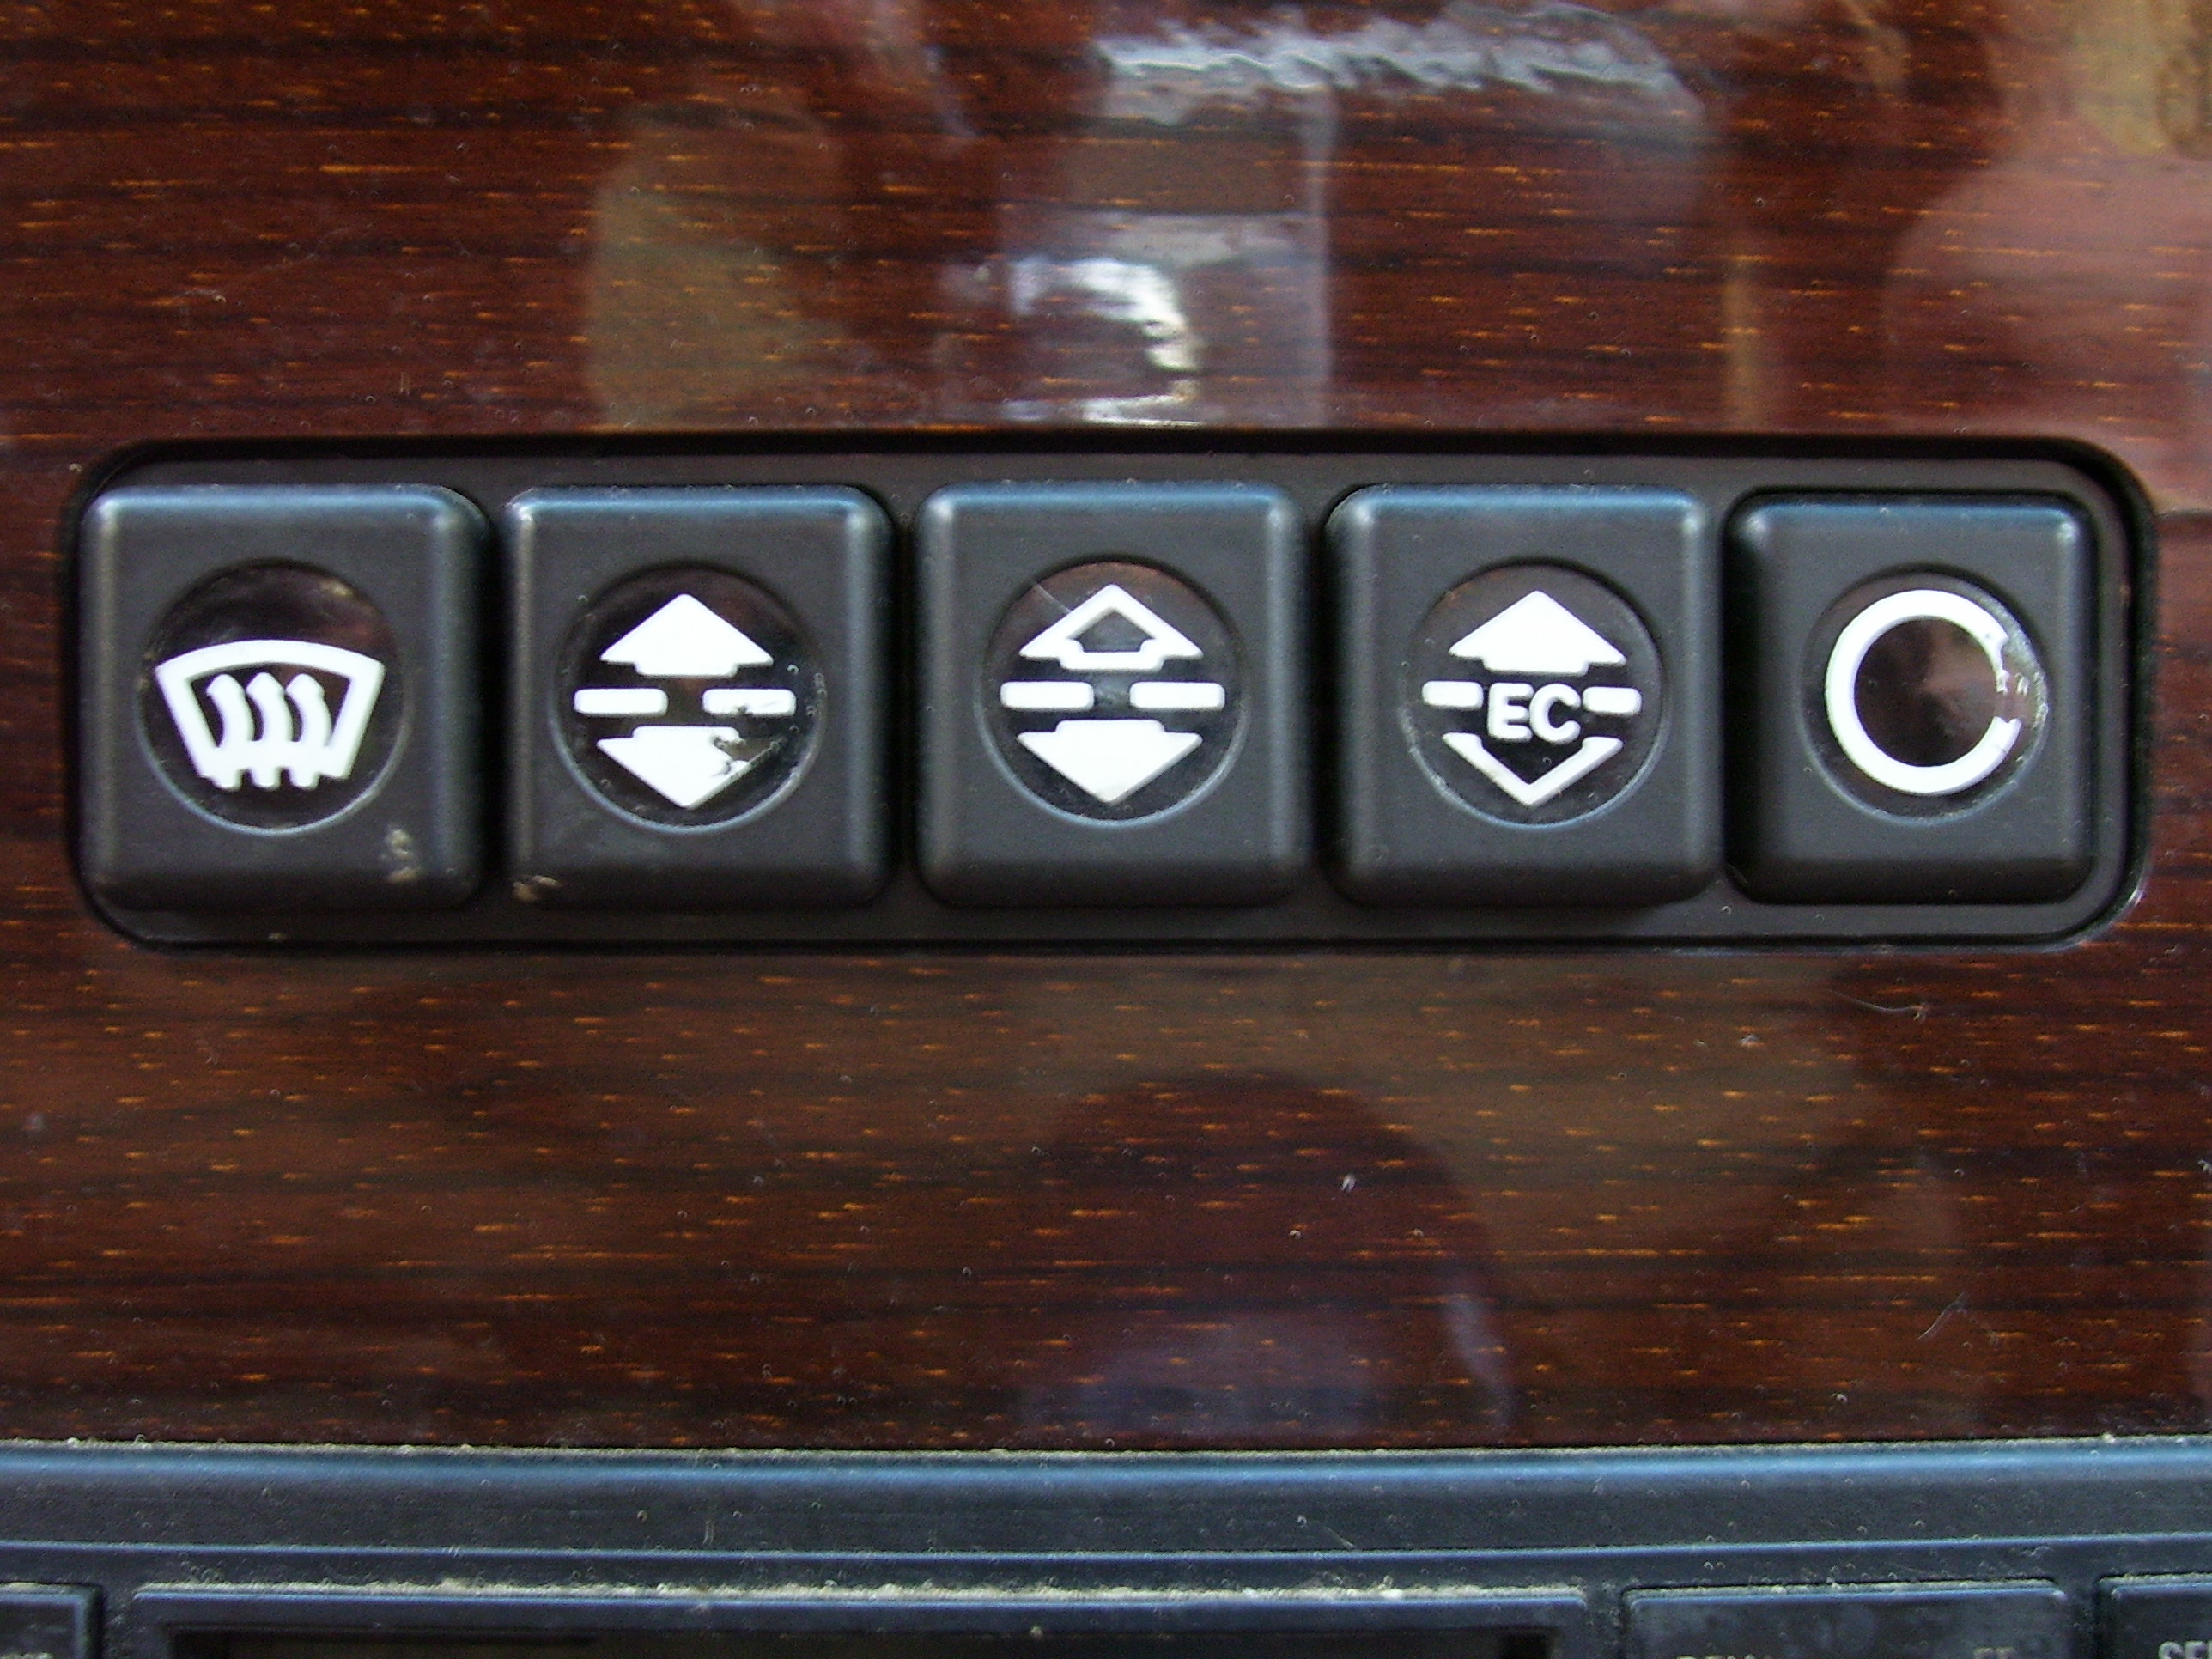 makkes buttons switches dashboard